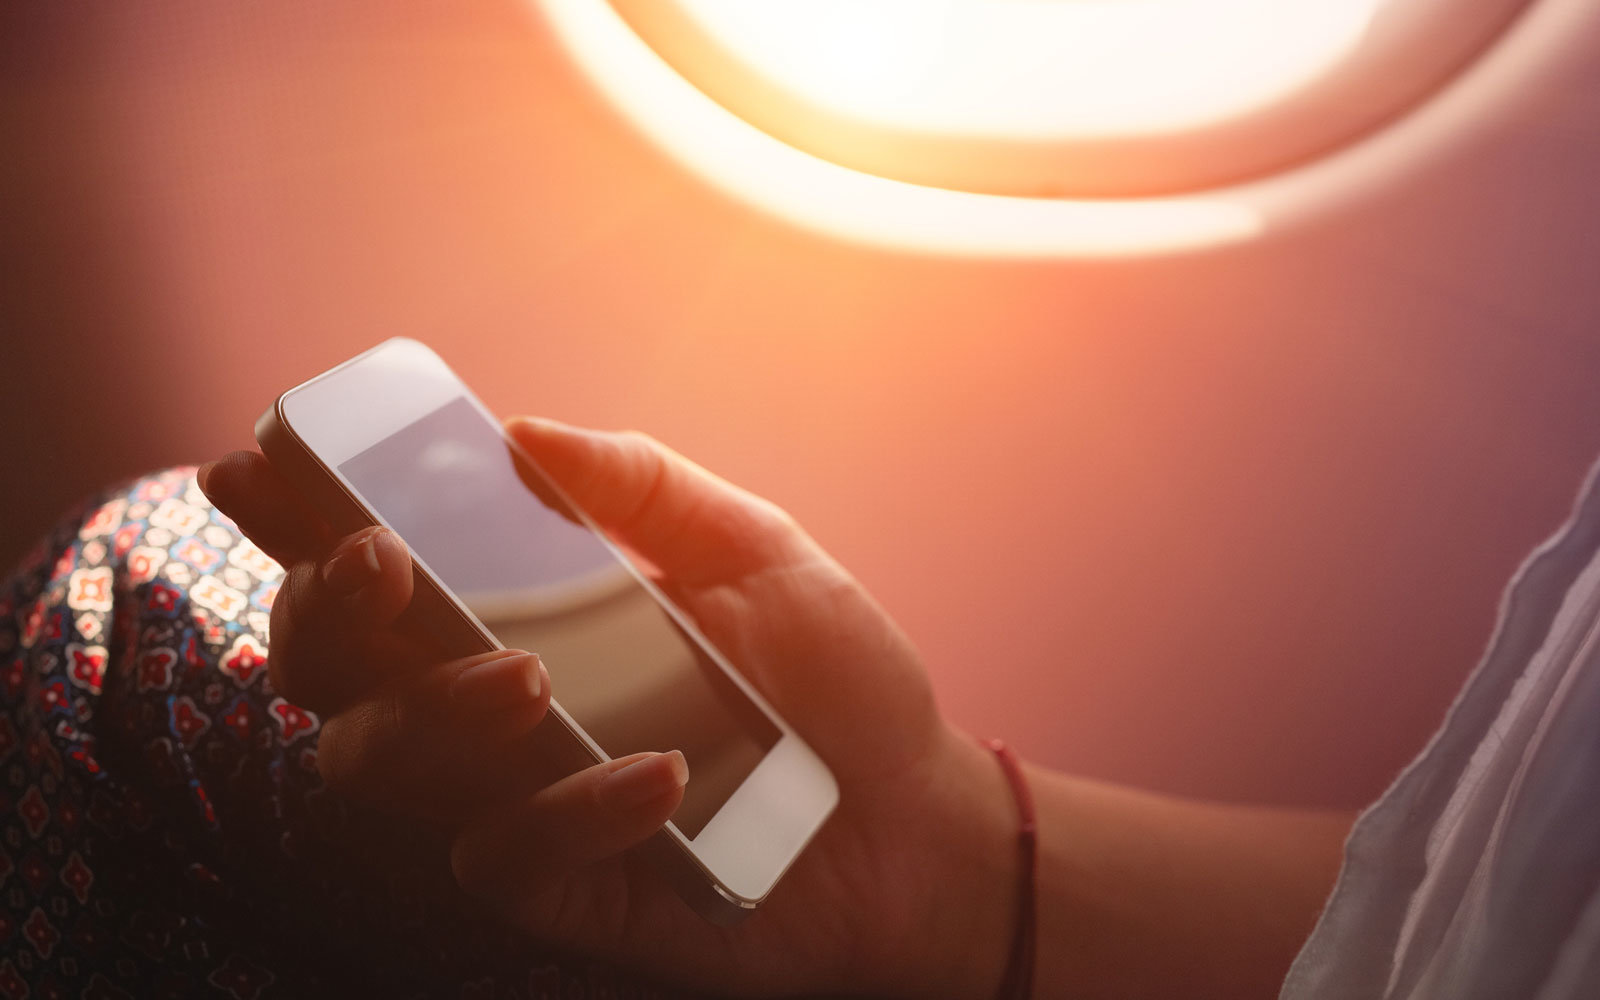 Should phone calls be allowed on flights?